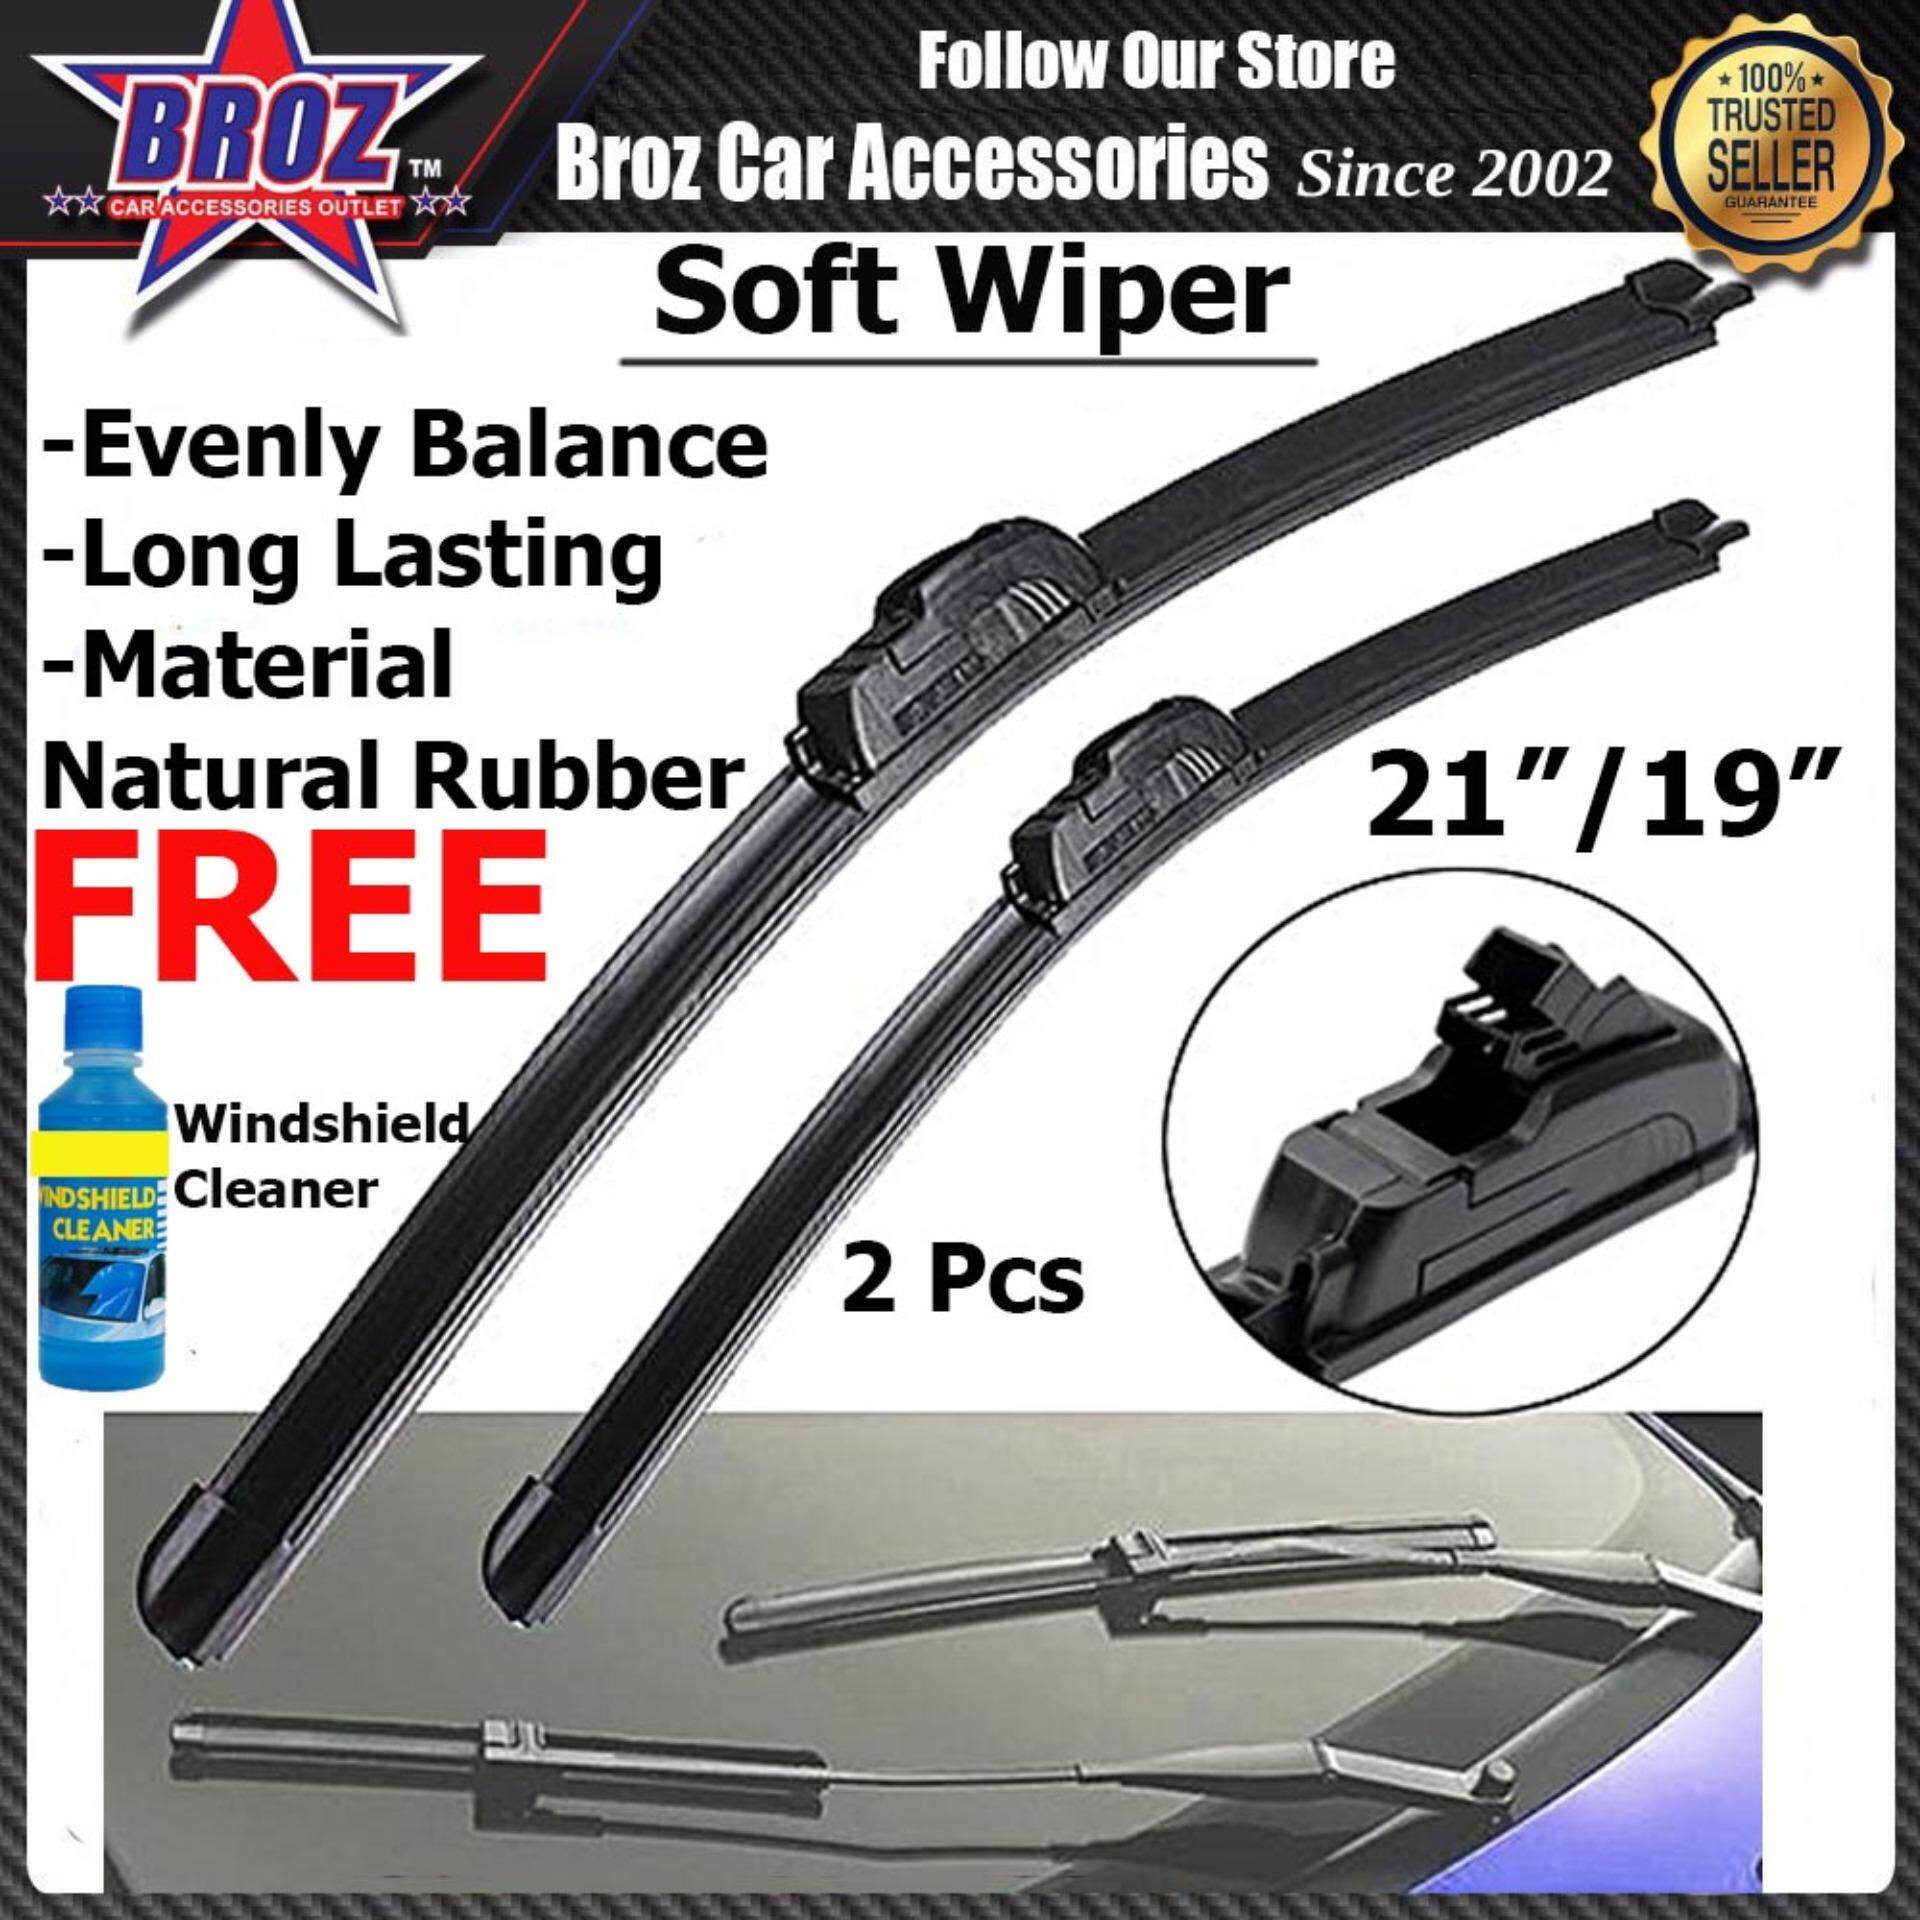 Waja Gen2 Hilux Fortuner Persona 2006-2015 Innova 2005-2011 Car Natural Rubber Soft Wiper 21/19 2pcs